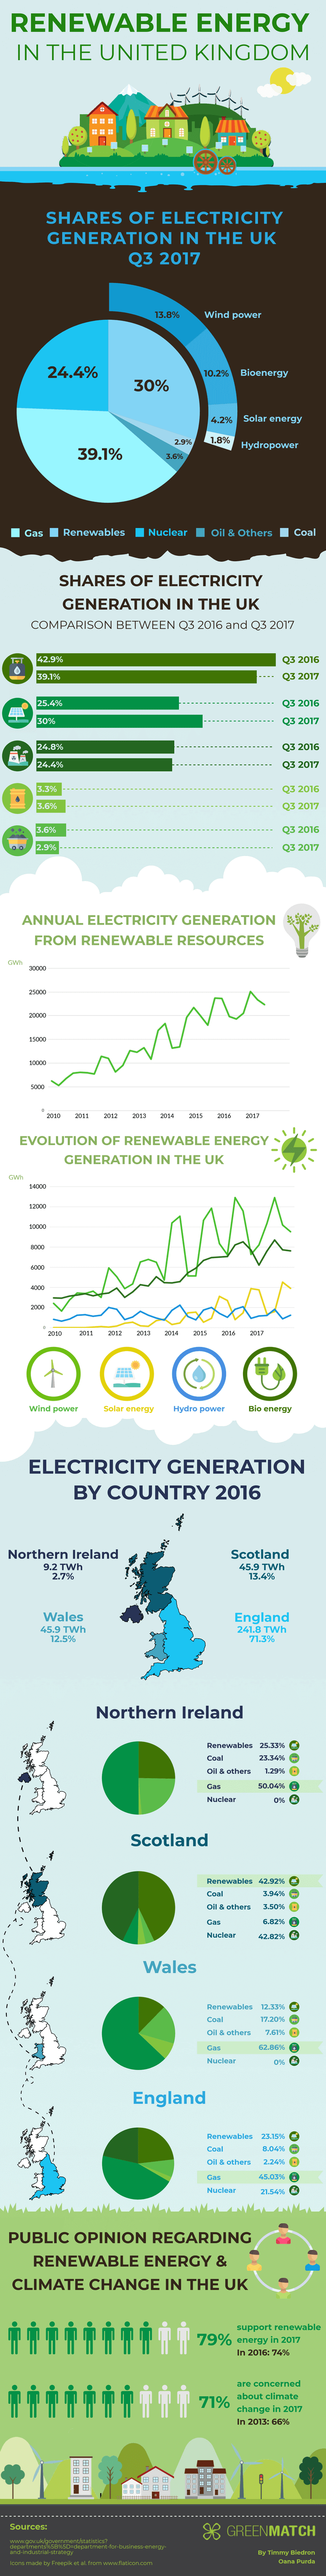 Renewable Energy in the UK Infographic